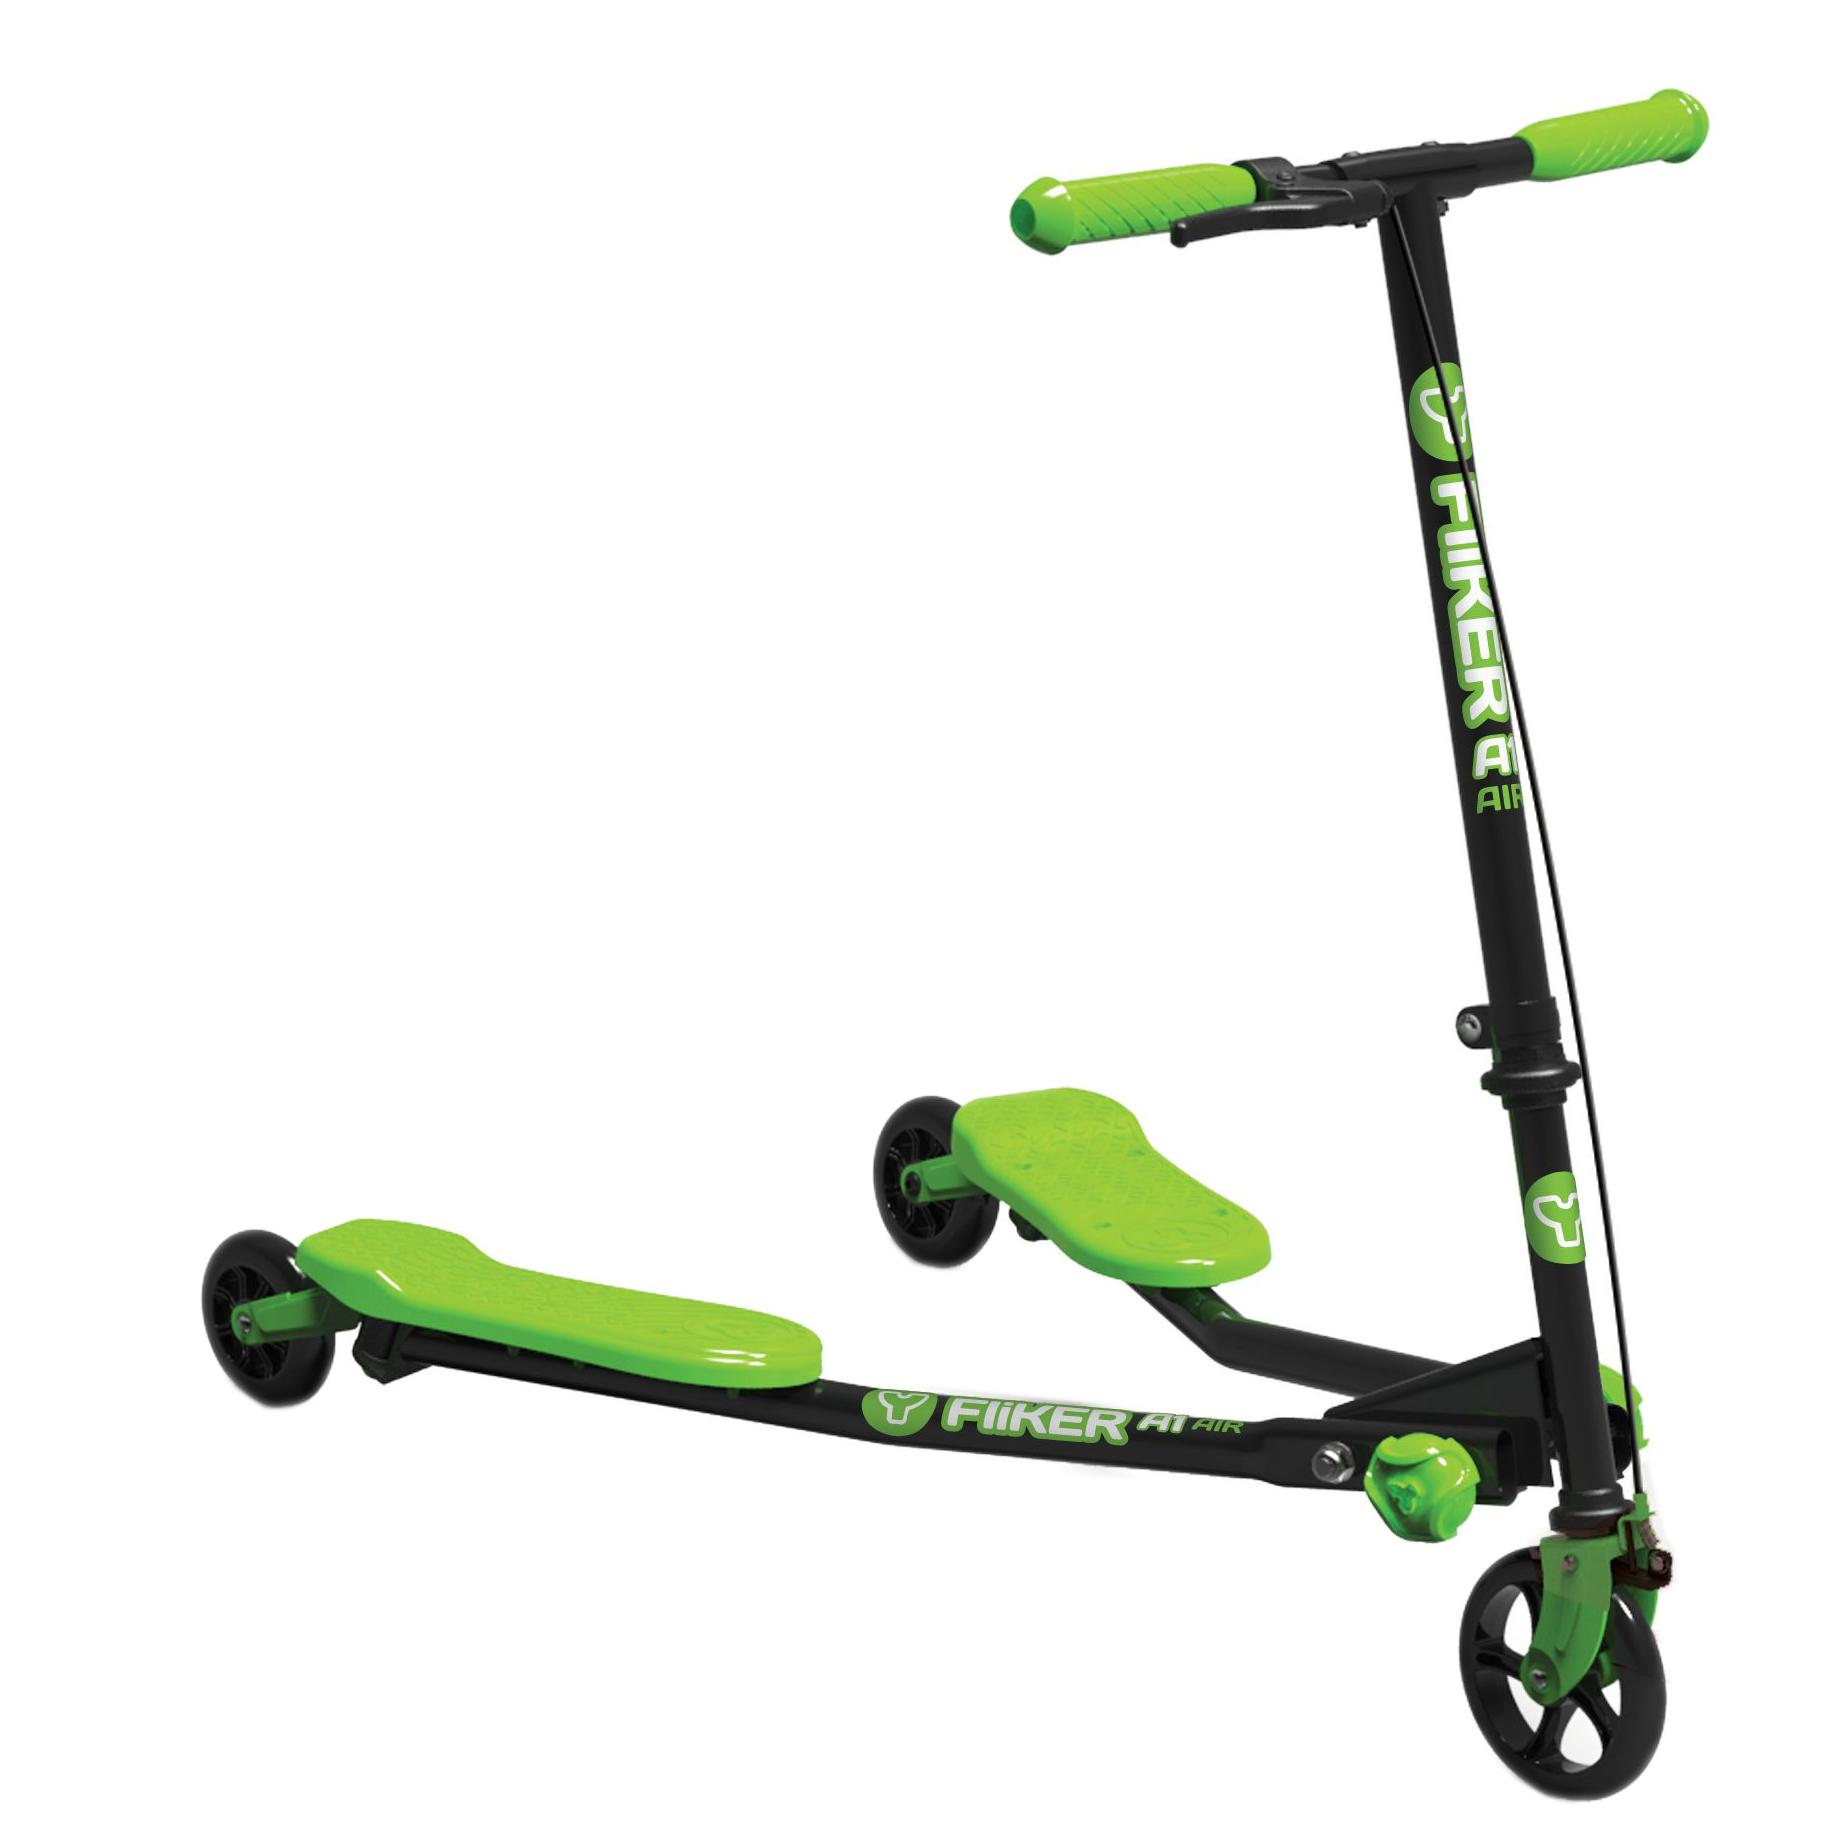 Genuine Yvolution Y Fliker Kids Scooter - Black/Green A1 Air - New Range | eBay